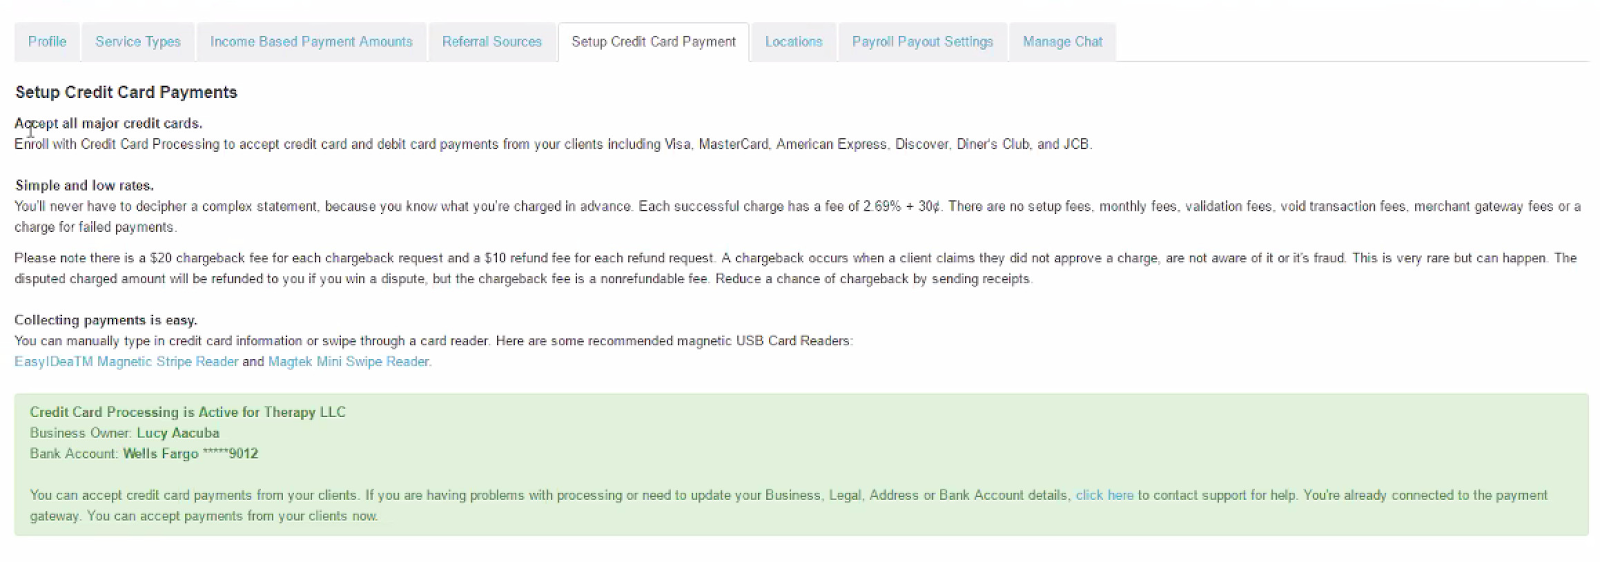 Setting Up Credit Card Processing | TheraNest Support Center